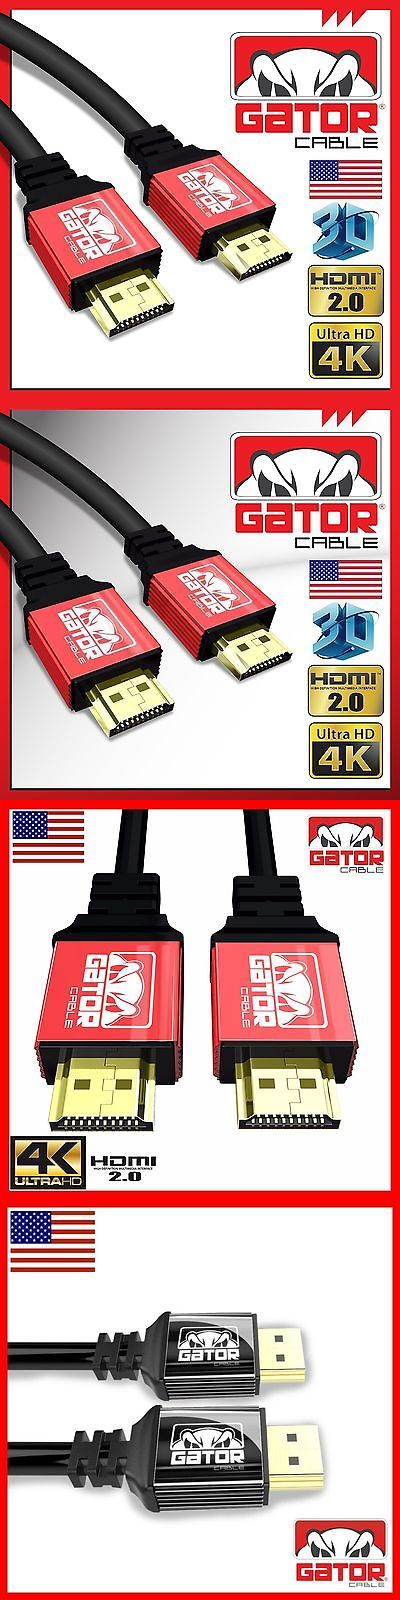 Video Cables and Interconnects: Ultra Hd High Speed Hdmi 2.0 Cable Hdtv Led 3D 2160P 4K X2k Hdr Ps4 Bluray Lot -> BUY IT NOW ONLY: $37.99 on eBay!